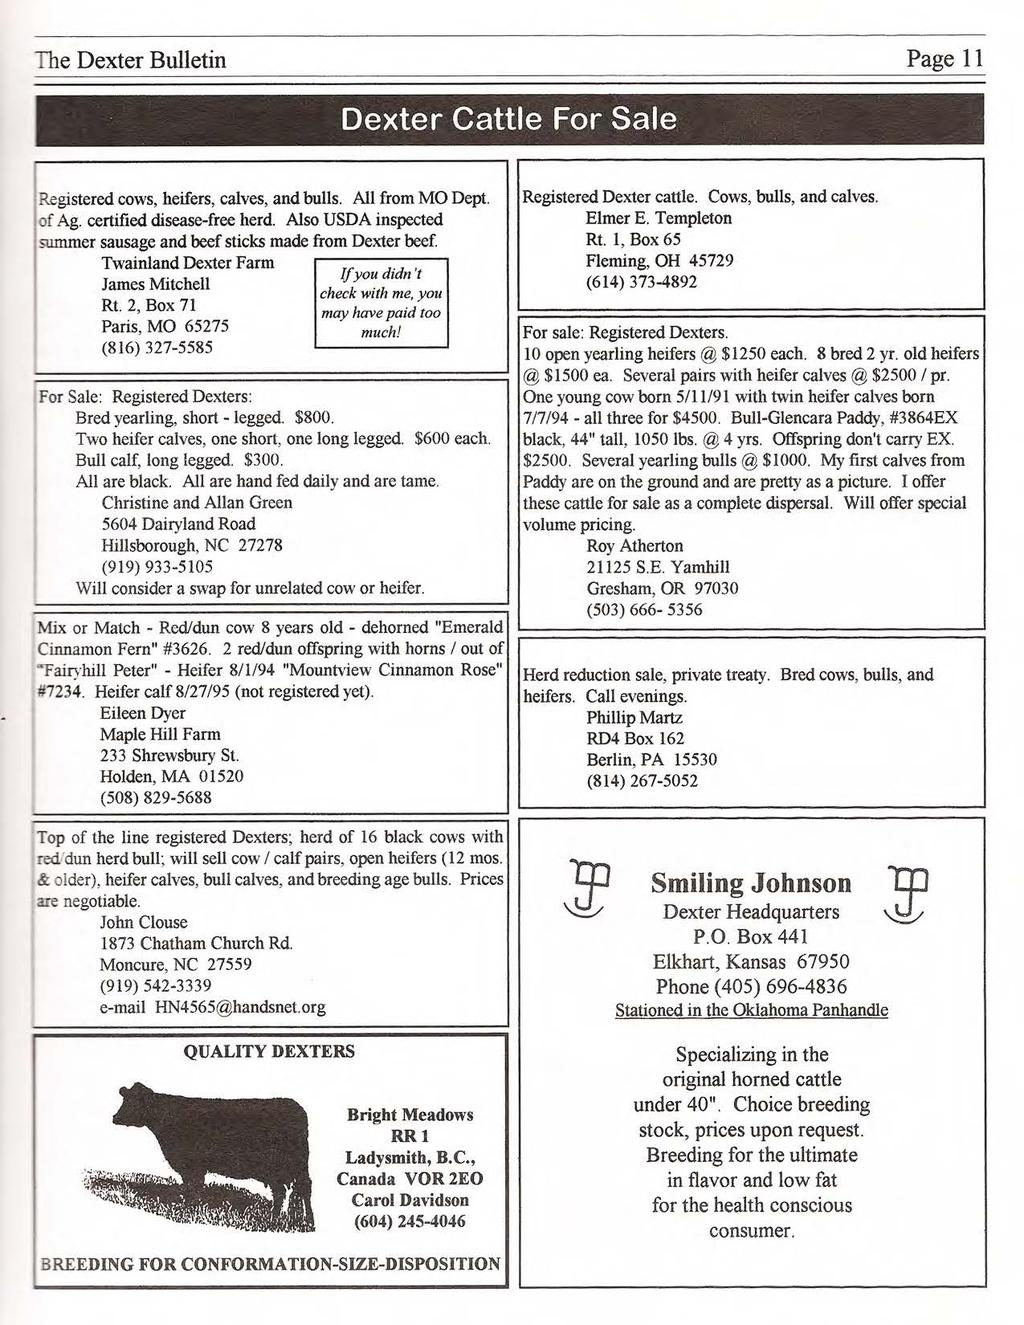 The Dexter Bulletin Page 11 Dexter Cattle For Sale Registered cows, heifers, calves, and bulls. All from MO Dept. of Ag. certified disease-free herd.